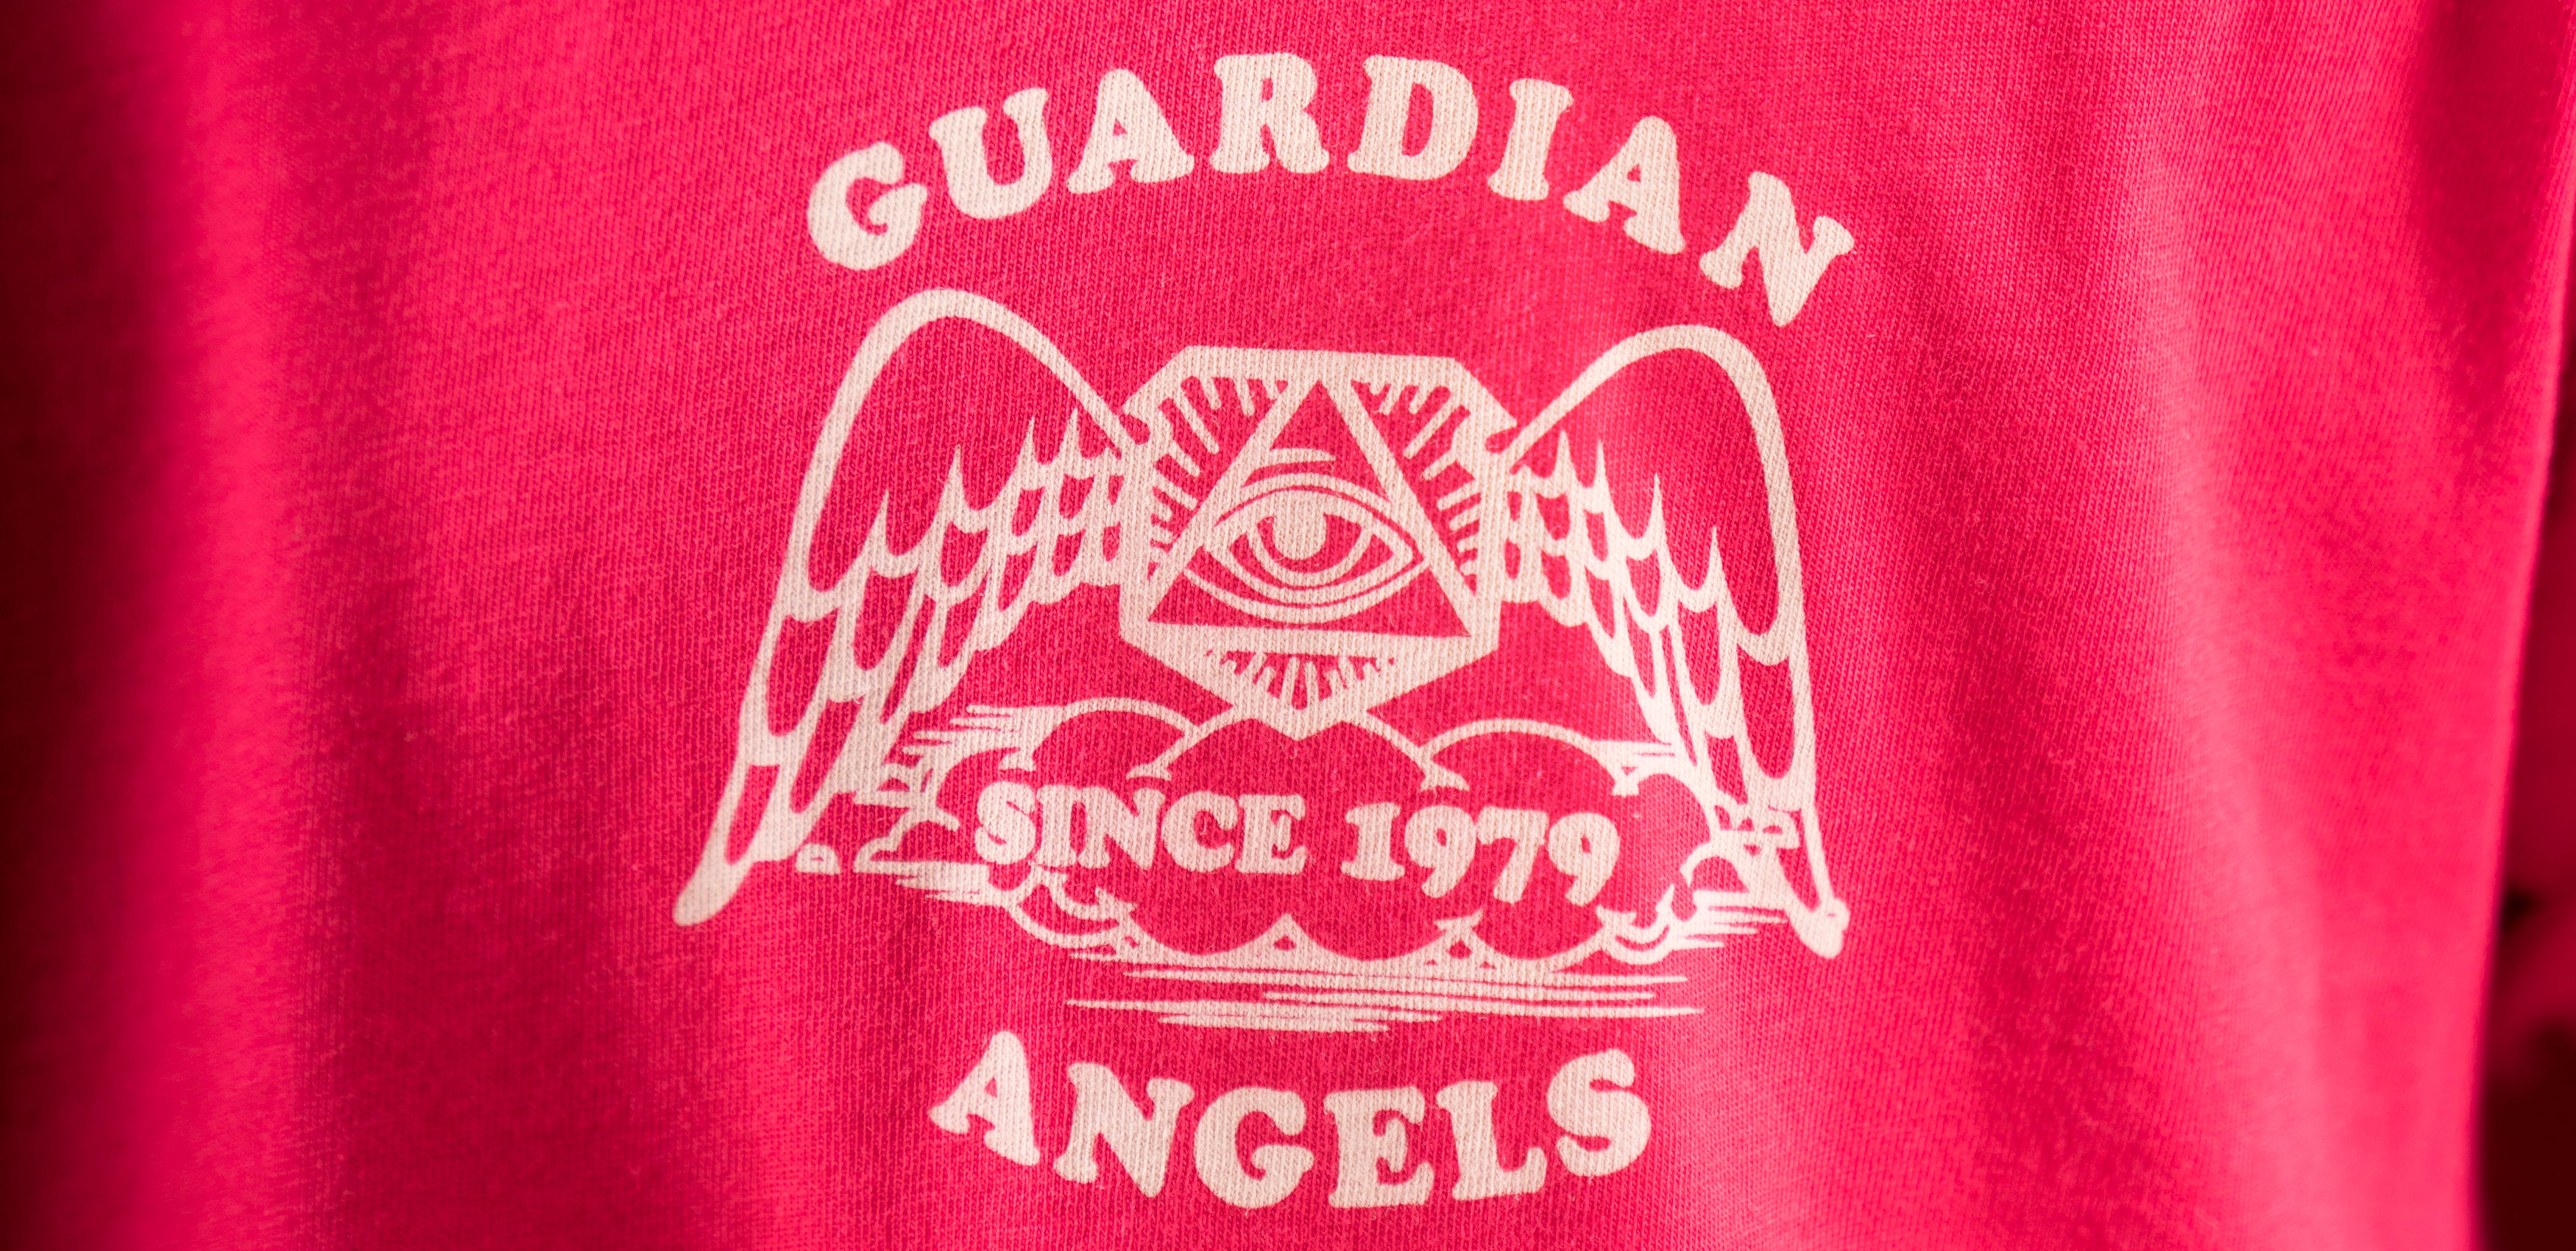 Guardian Angels Become A Legend